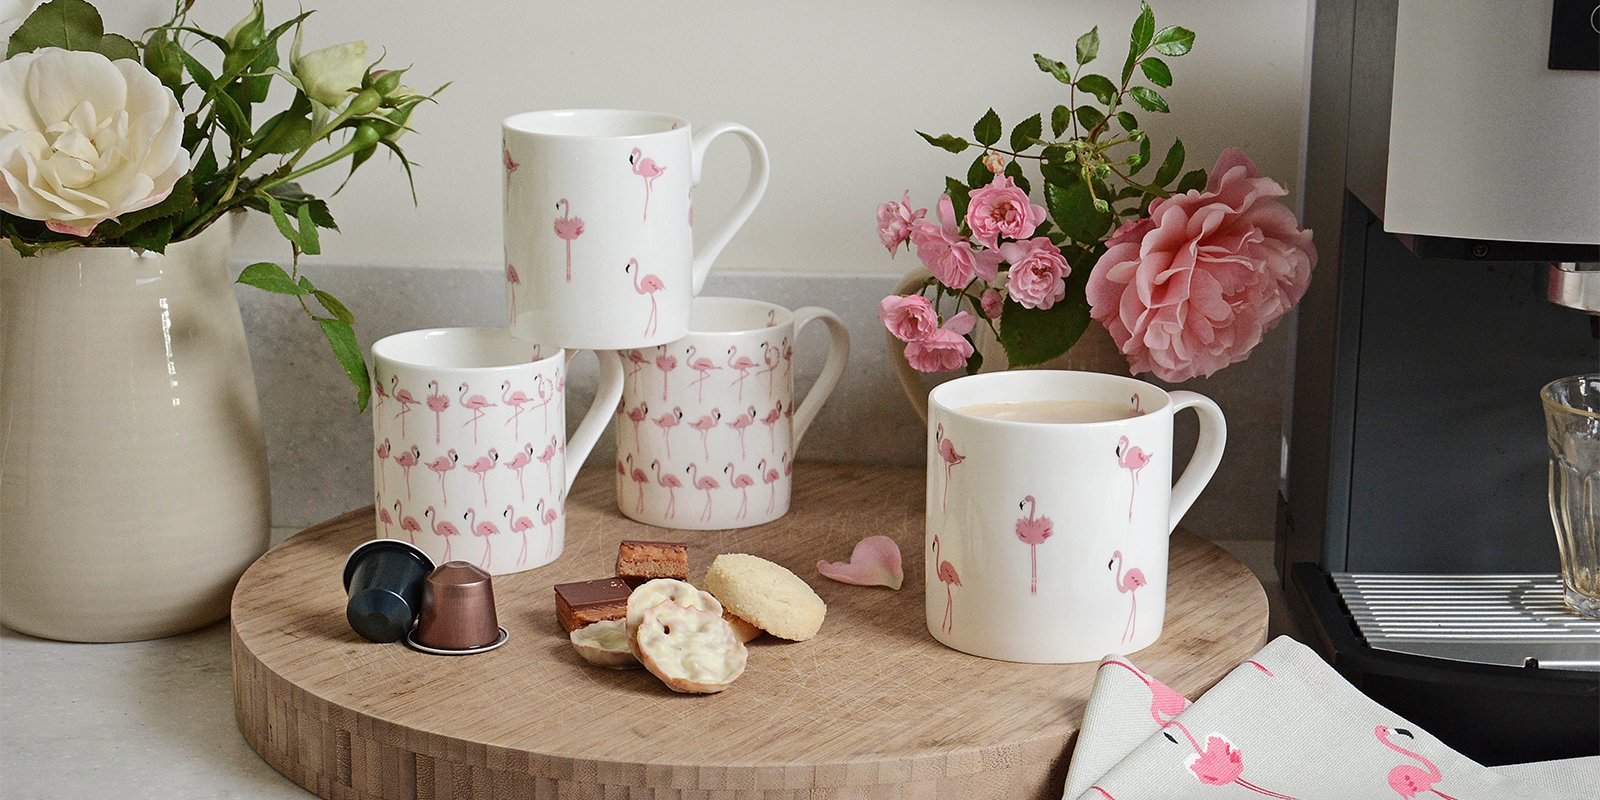 Flamingo gifts, Flamingo homewares and Flamingo accessories.